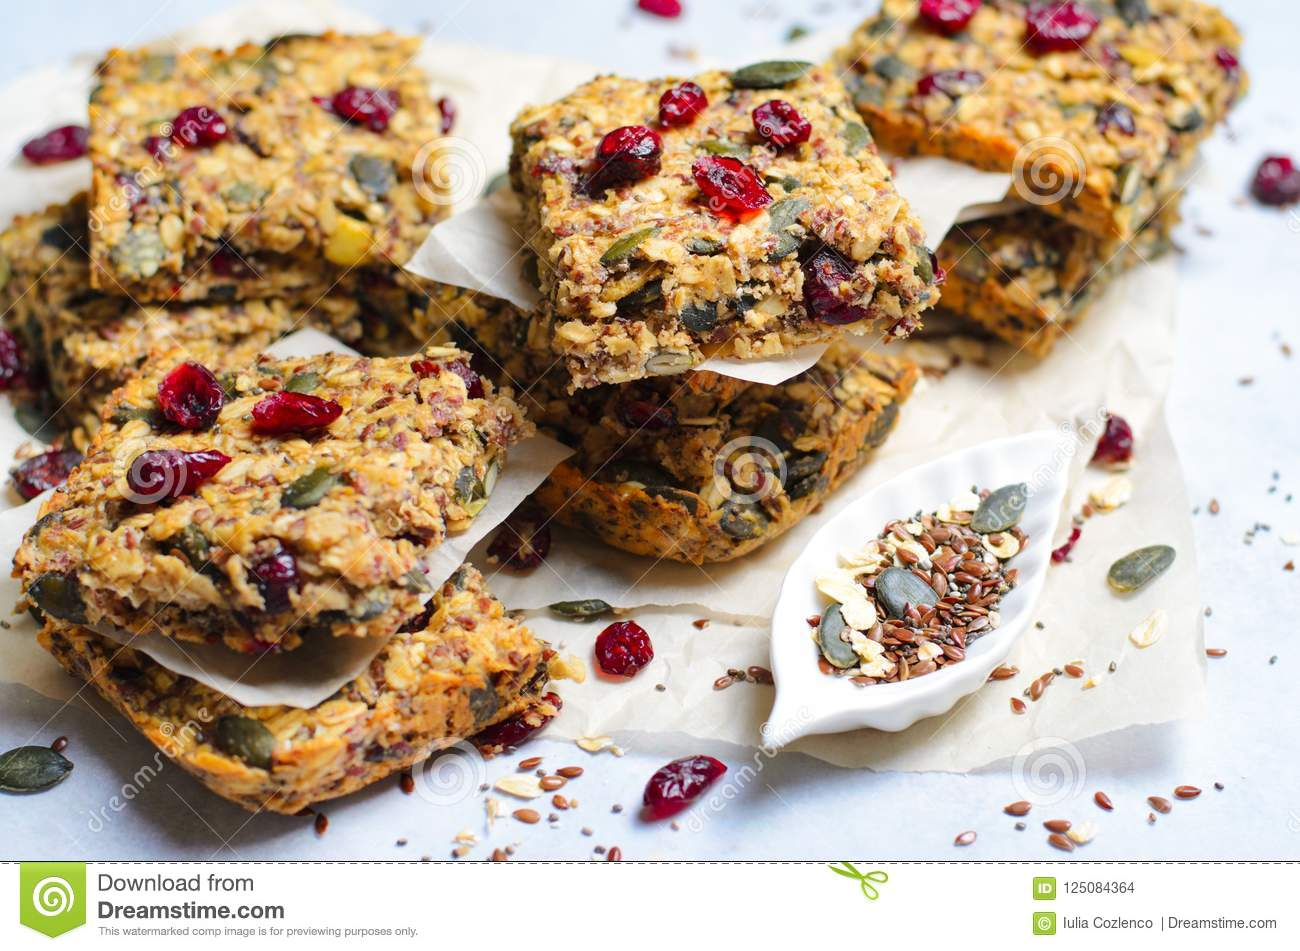 Granola Bars, Superfood Homemade Snack, Healthy Bars With